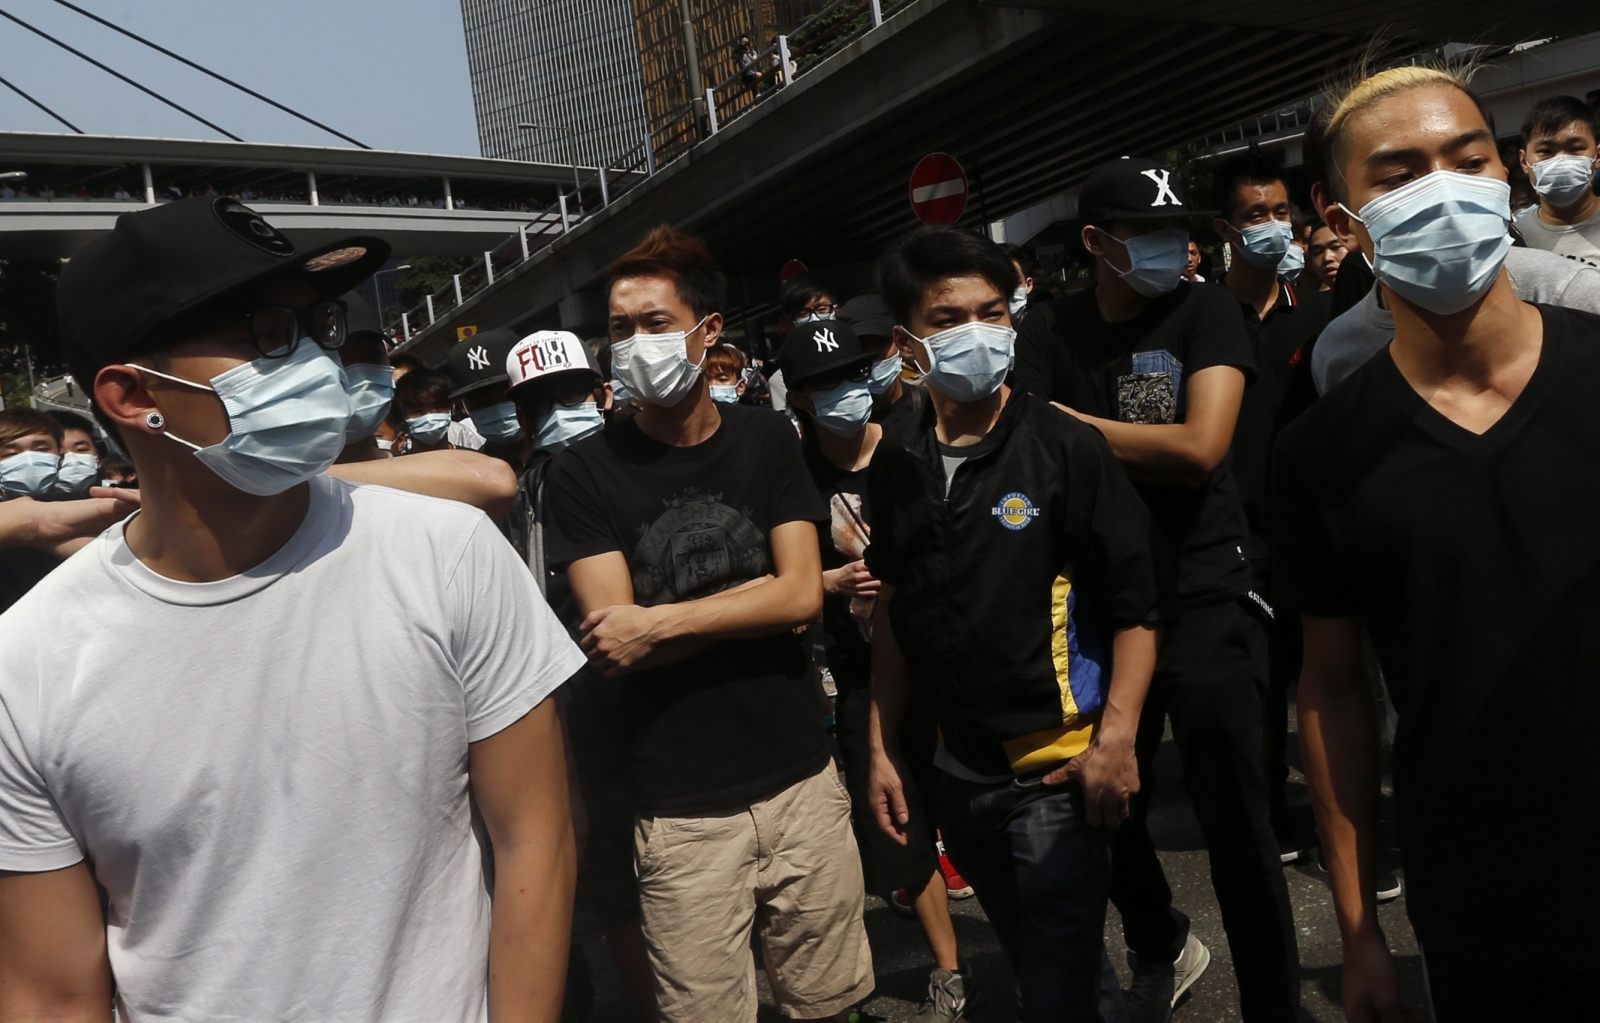 Fights Erupt as Masked Group Tries to Break Hong Kong Protest Barriers